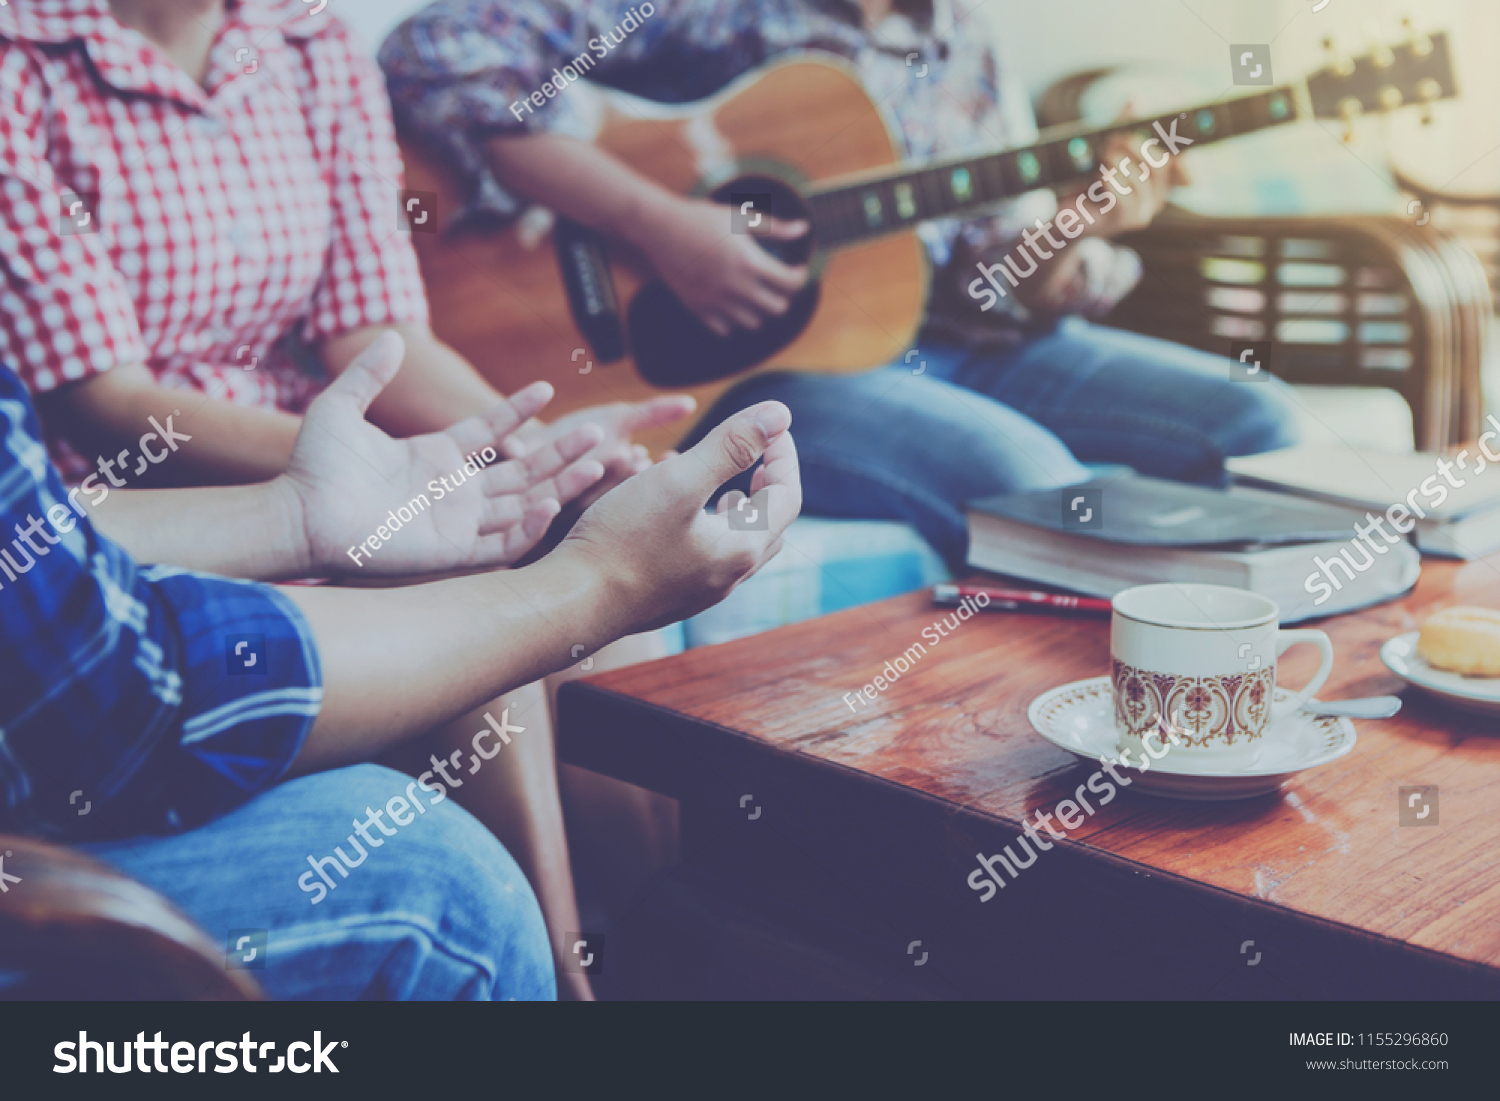 stock-photo-christian-family-worship-god-in-home-with-coffee-cup-donut-and-holy-bible-on-wooden-table-1155296860.jpg